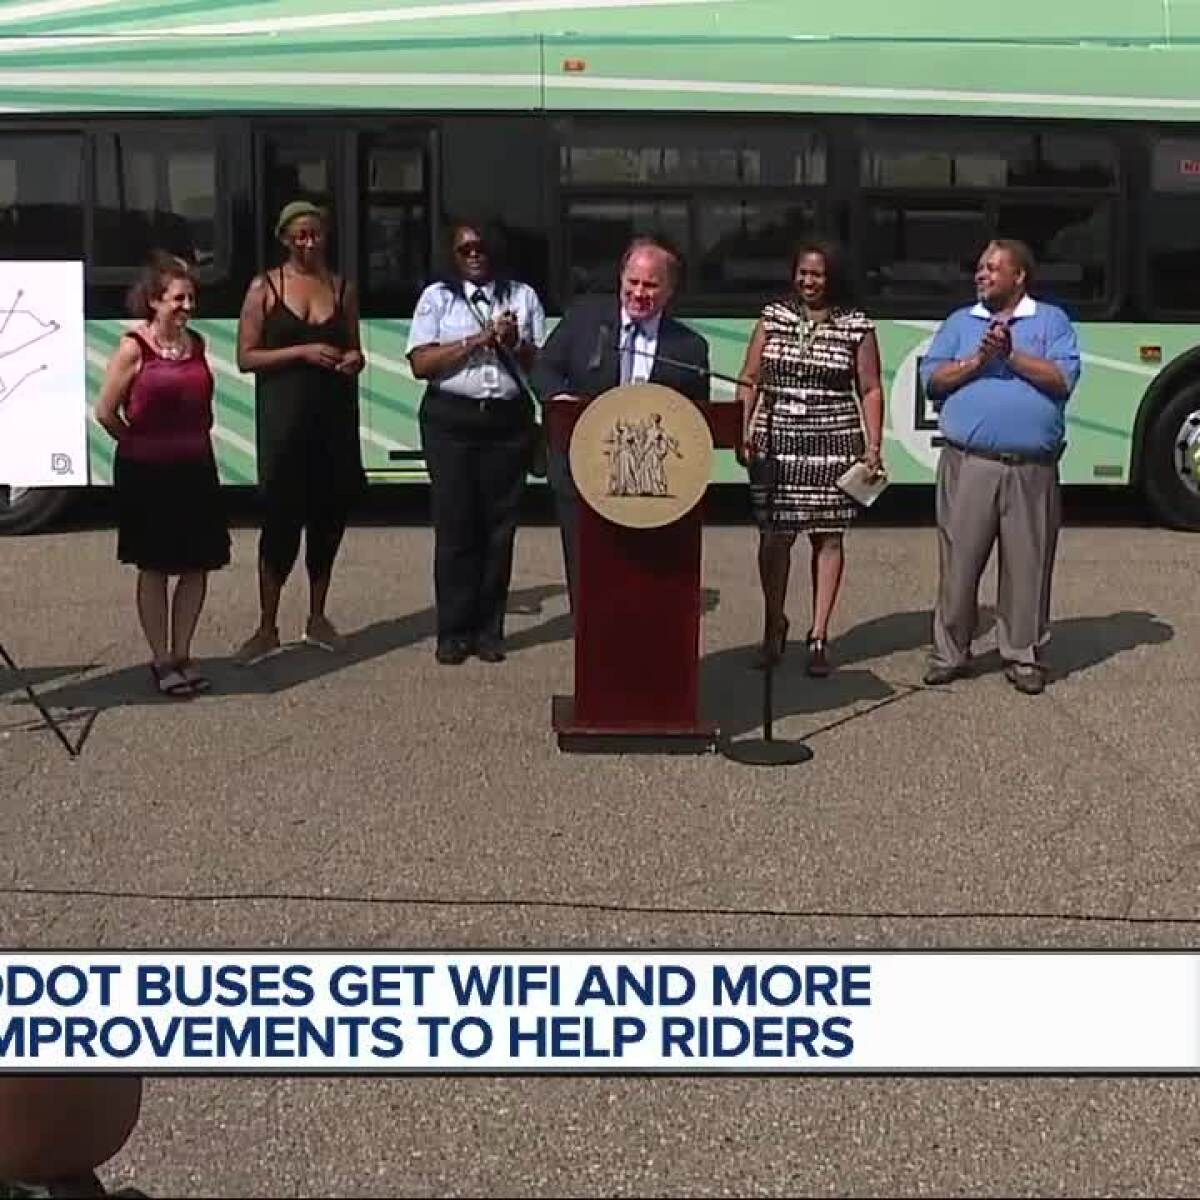 new ddot bus service will add 500 trips per week, buses with wifi